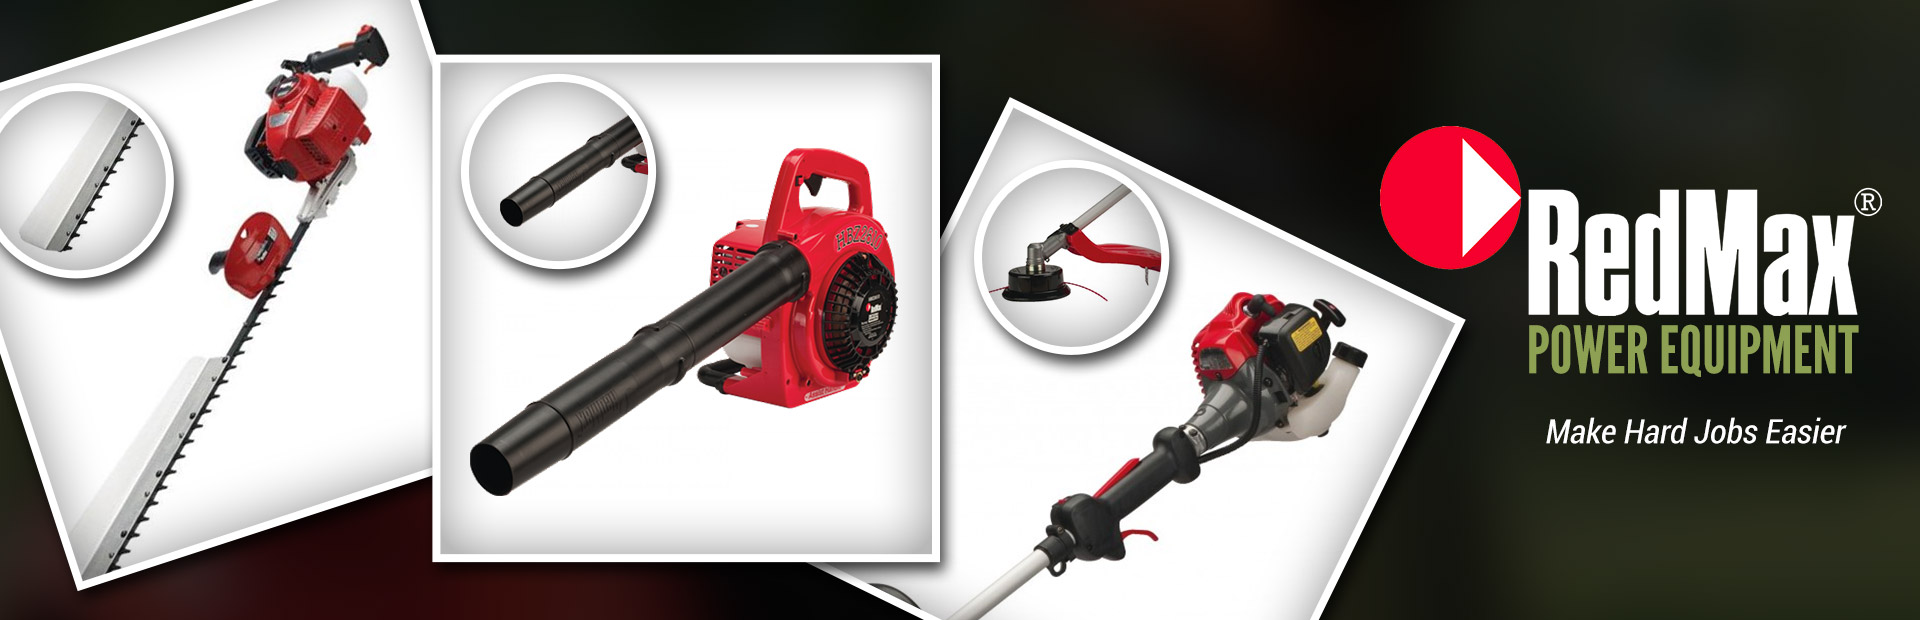 RedMax Power Equipment: Click here to view our selection.